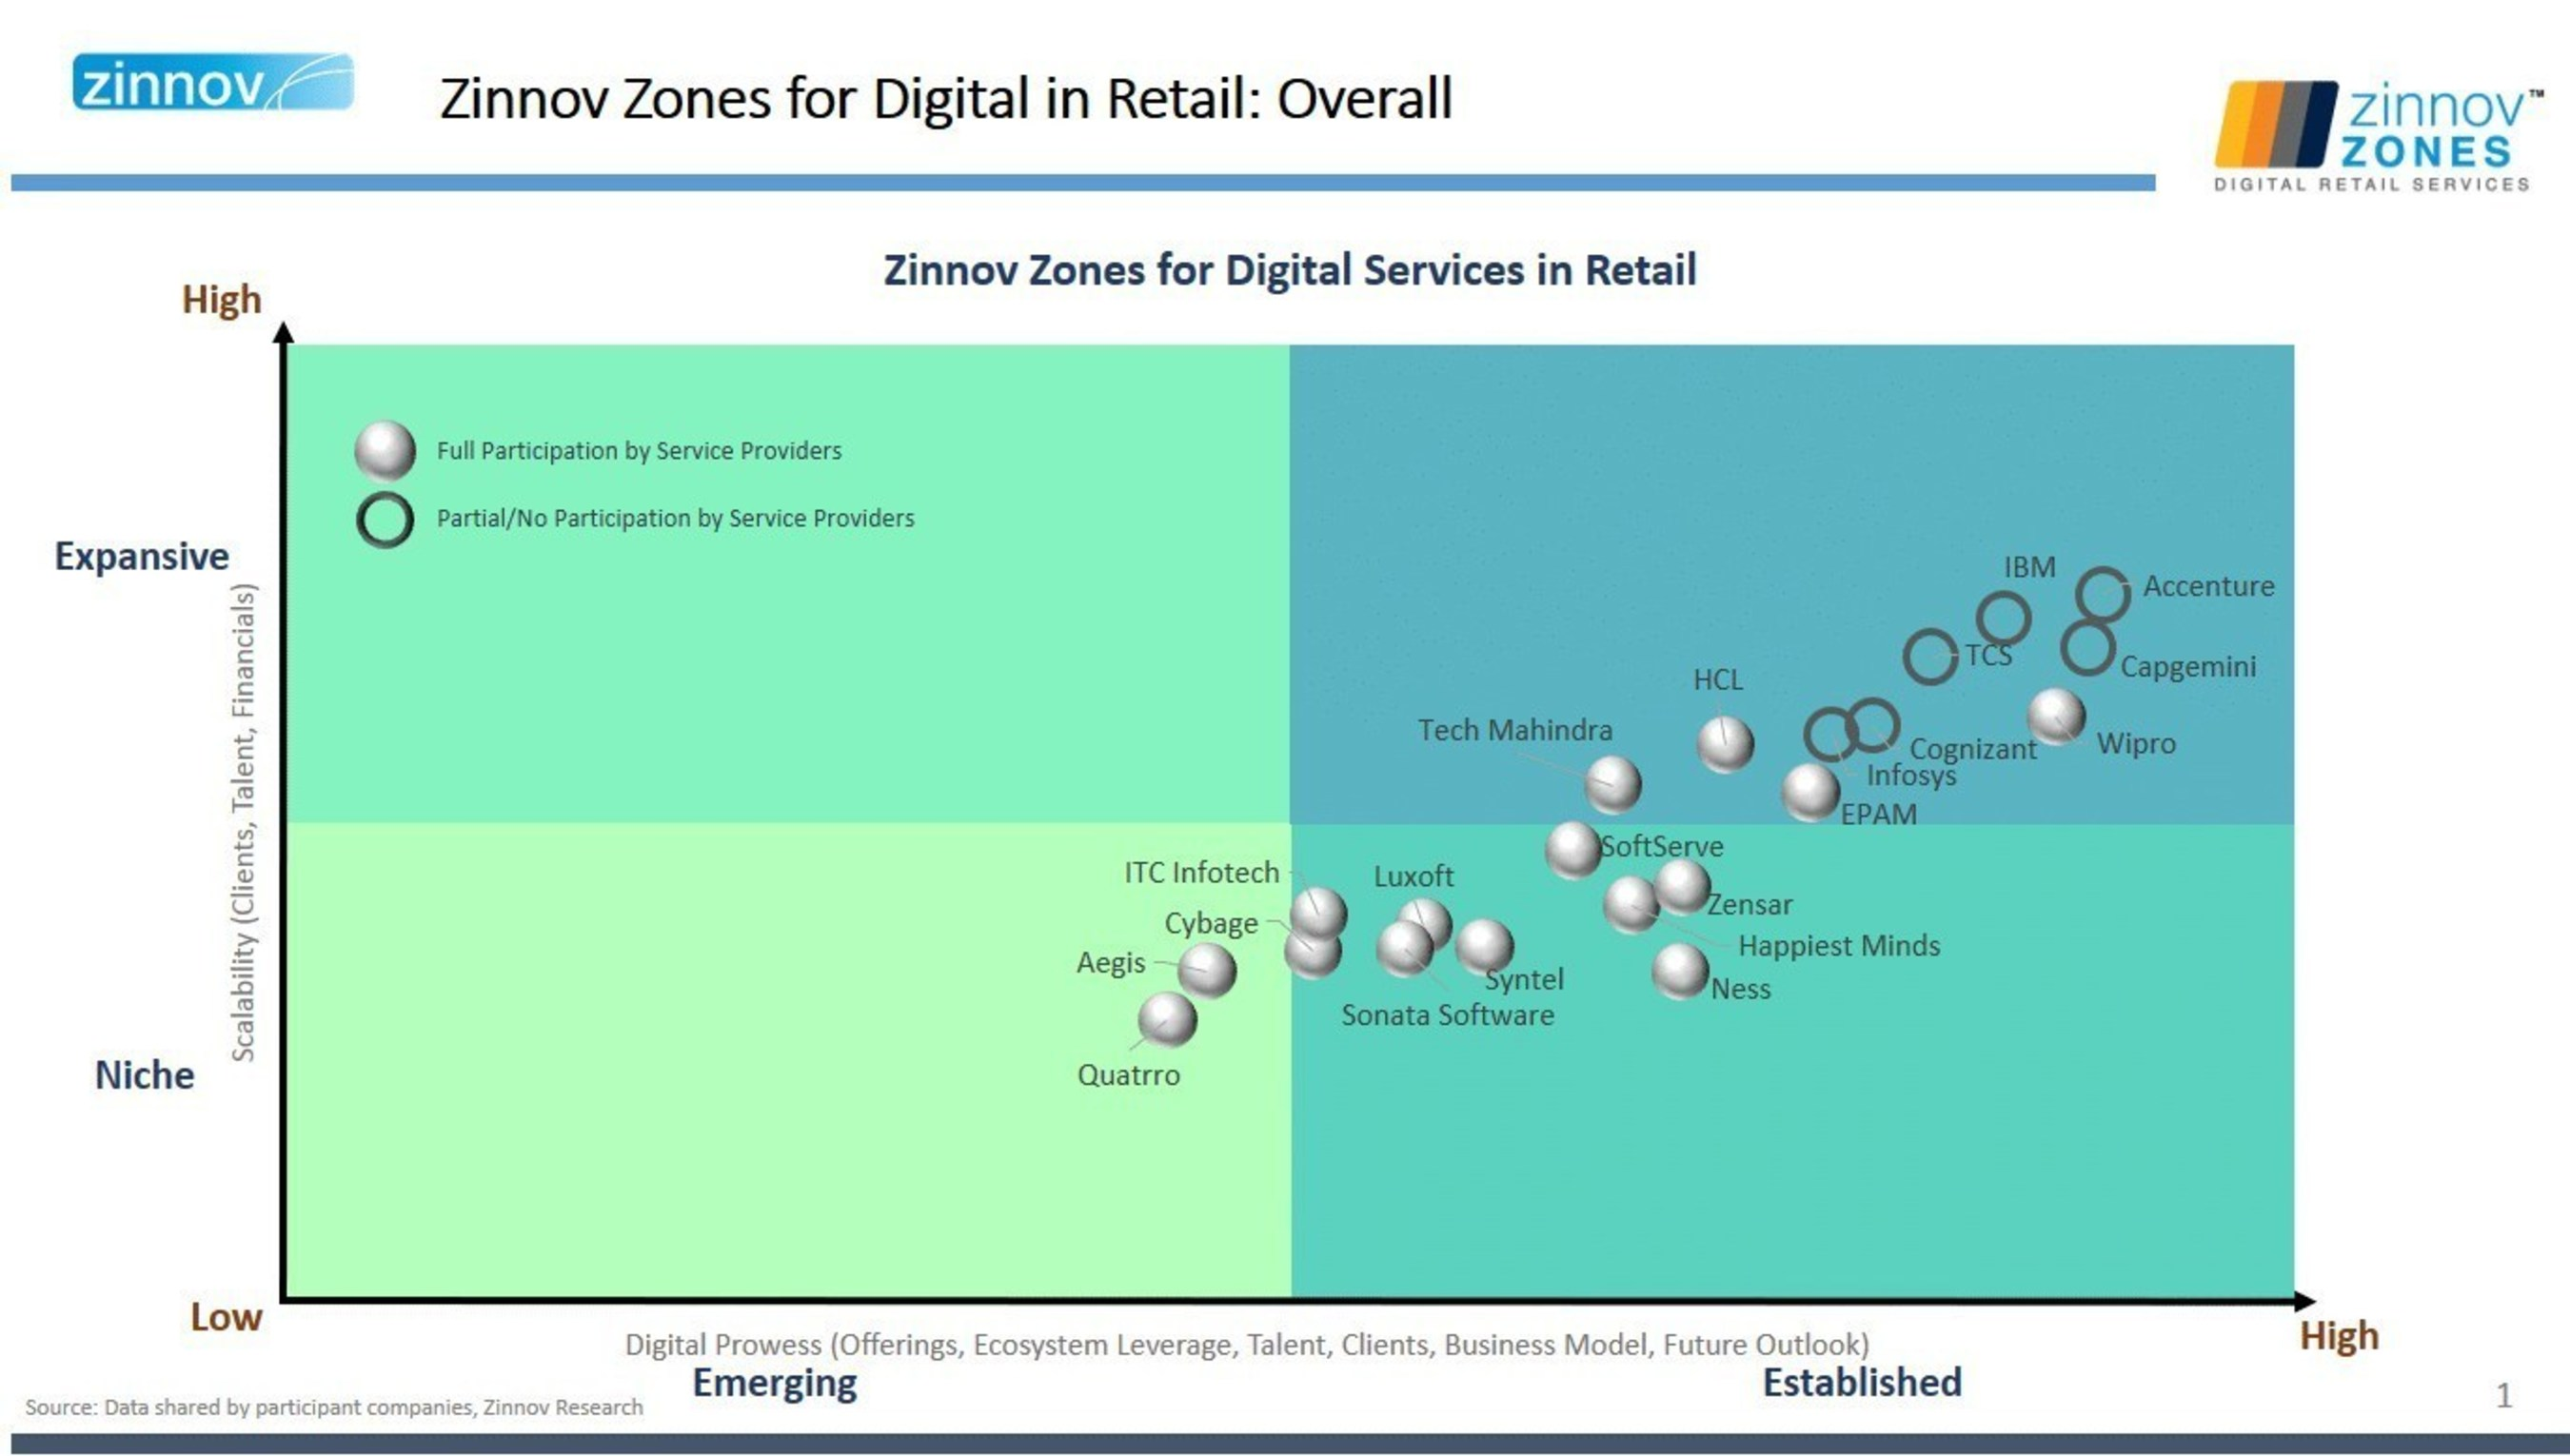 Global Retail Spending on Digital Services Stands at USD 70 Billion in 2016 and is Expected to Reach USD 150 Billion by 2020: Says Zinnov